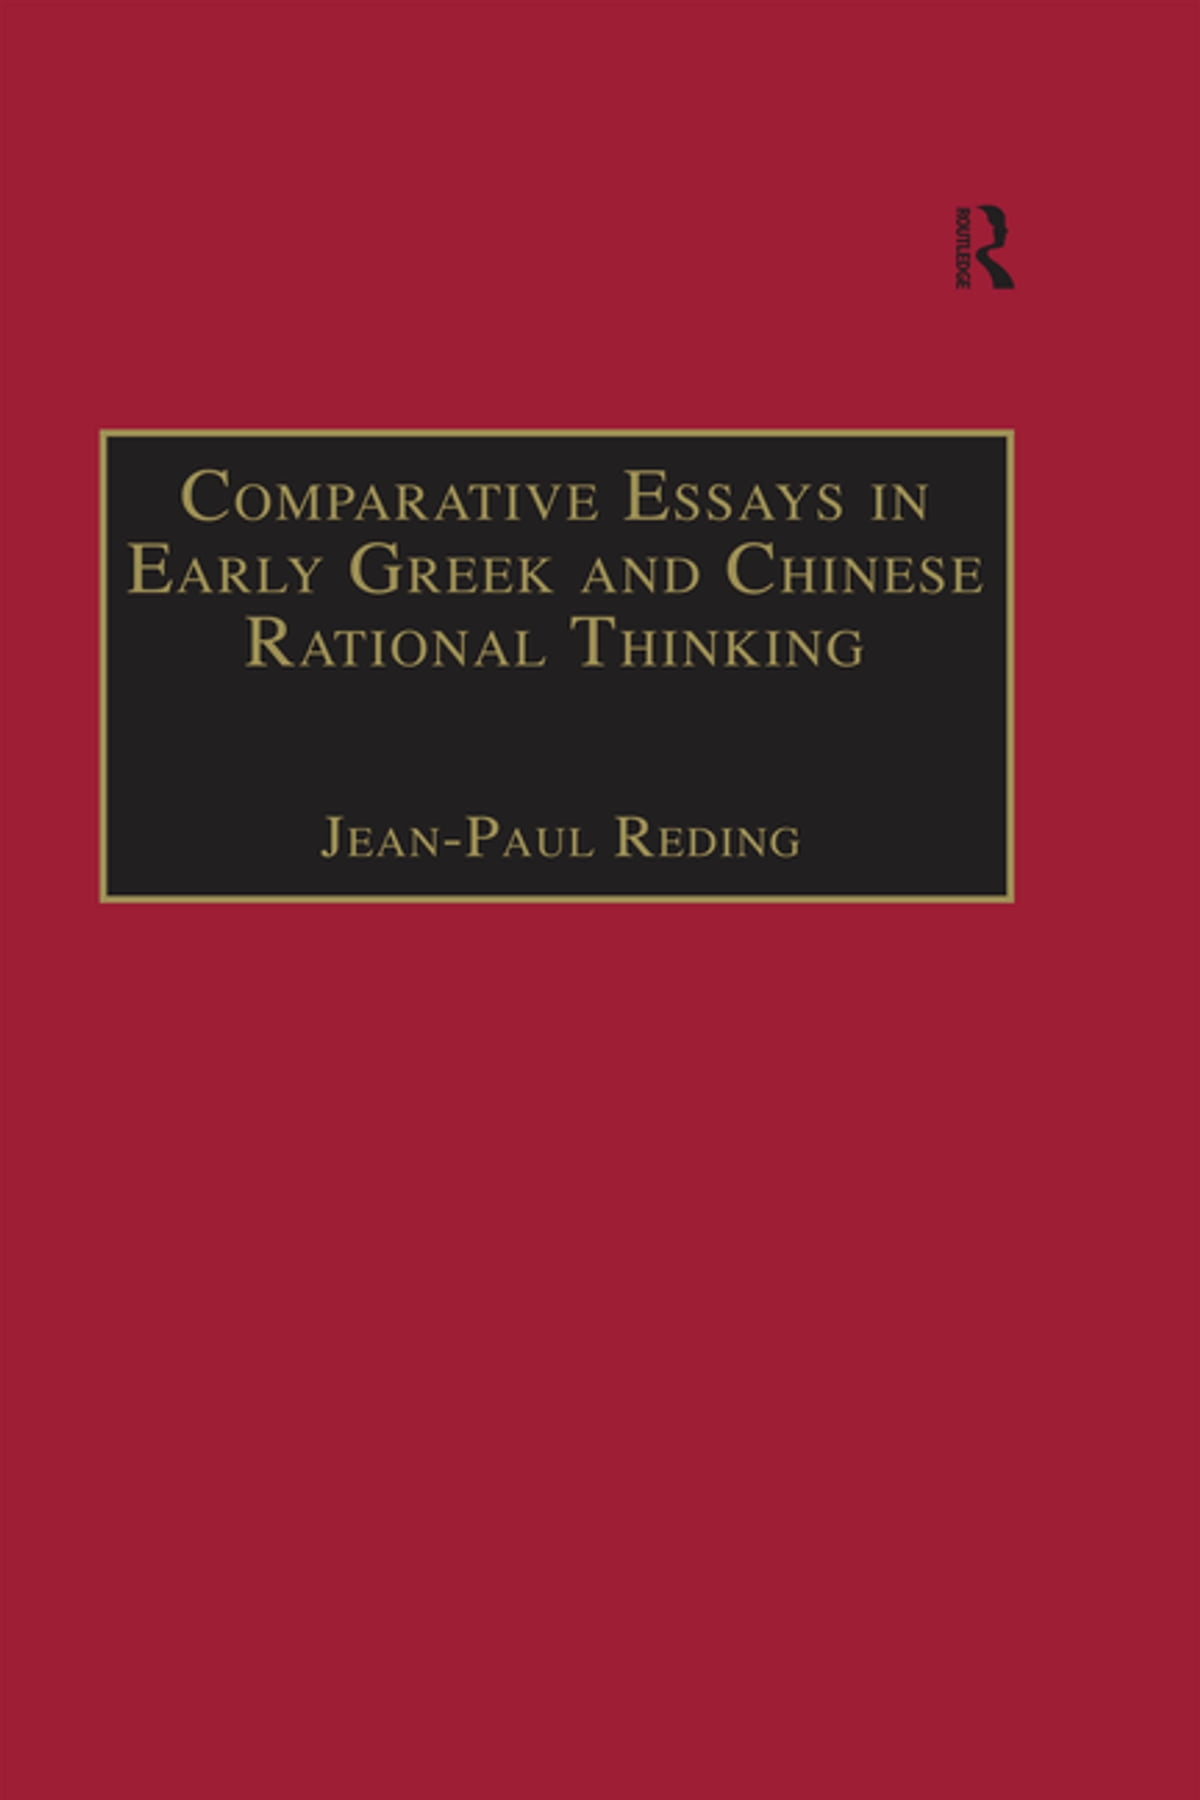 Comparative Essays In Early Greek And Chinese Rational Thinking  Comparative Essays In Early Greek And Chinese Rational Thinking Ebook By  Jeanpaul Reding    Rakuten Kobo Pollution Essay In English also Online Paid Assignments  Essay Of Science